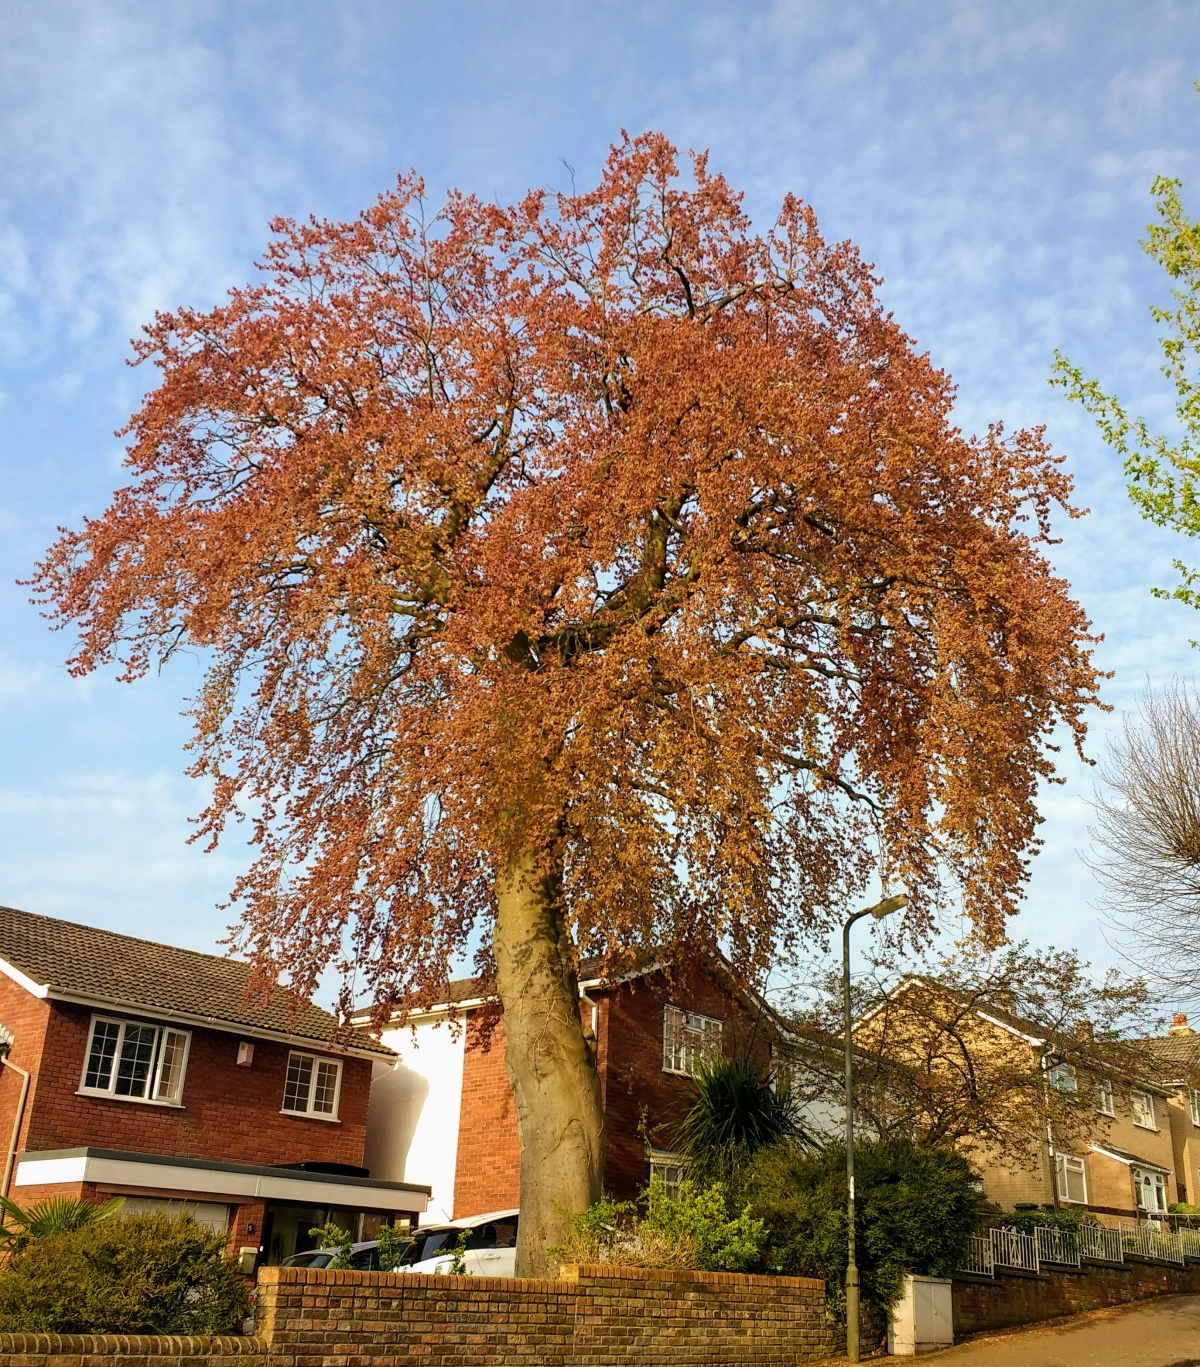 The Bristol Tree of the Year Competition, 2018